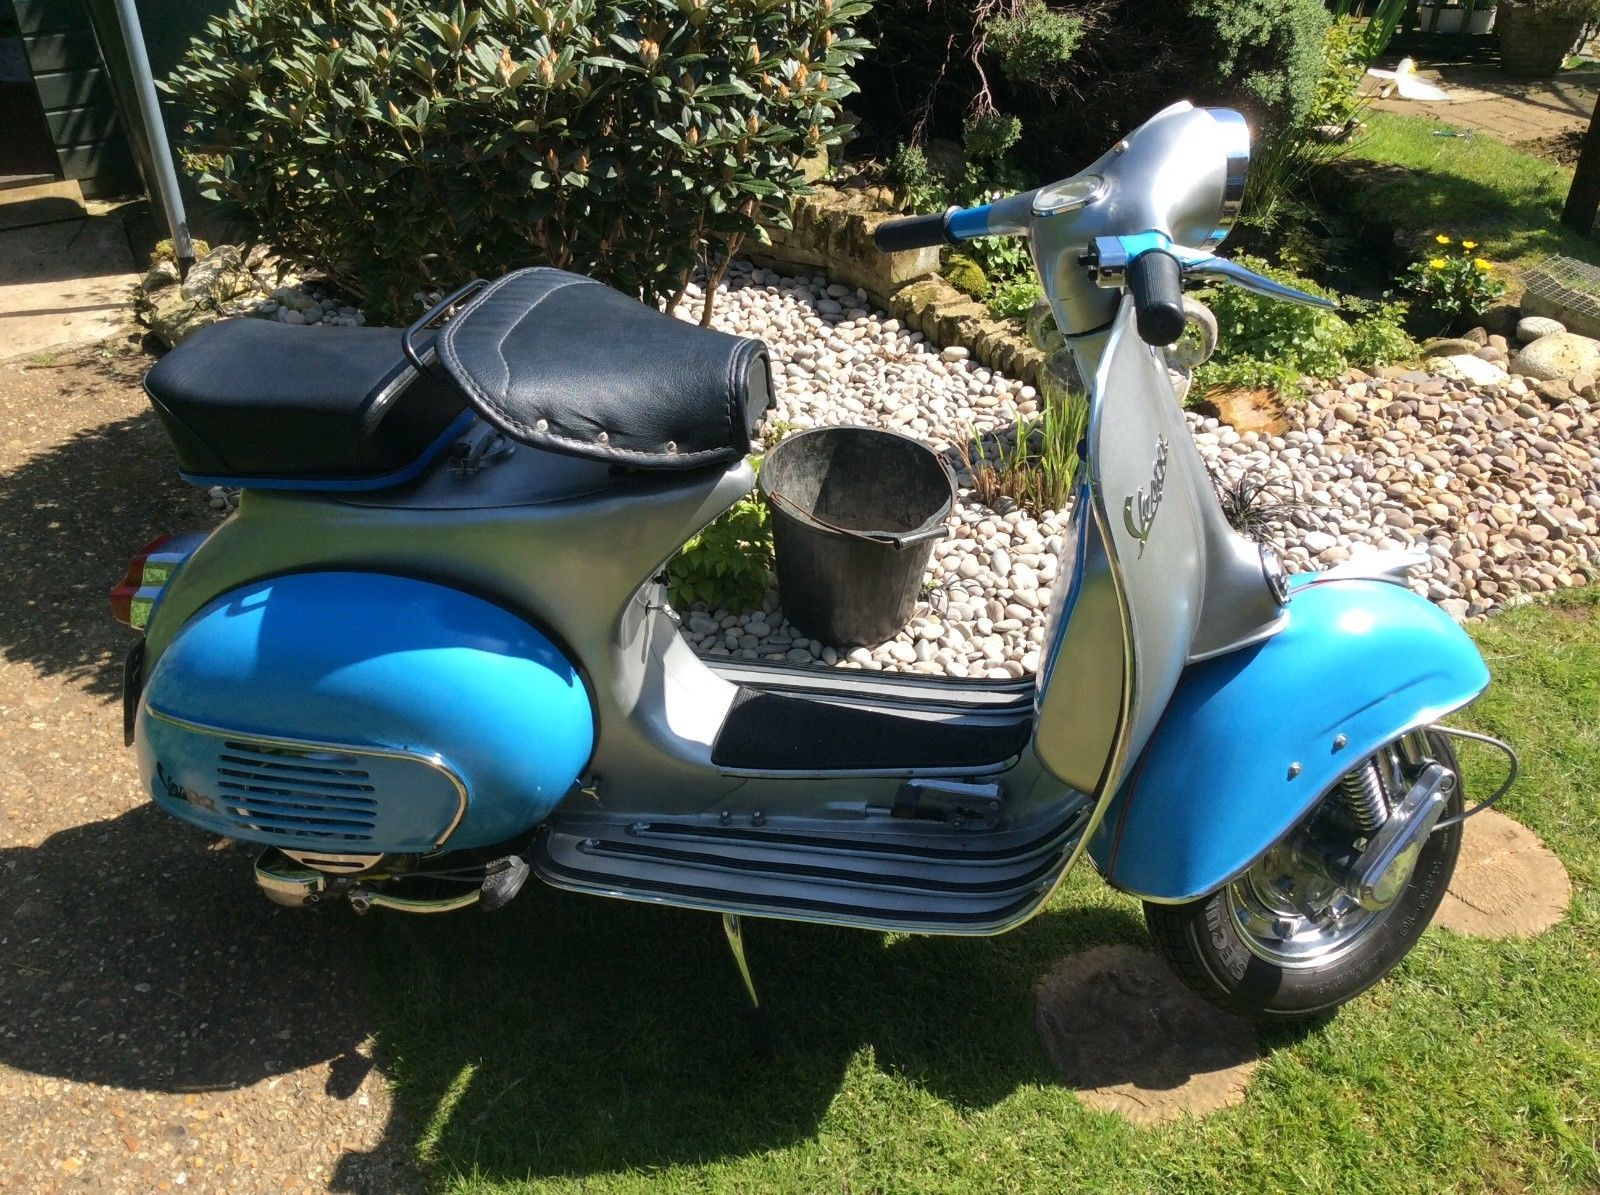 1962 Vespa sprint 150 cc full nut and bolt restoration v5 in my name on sorn